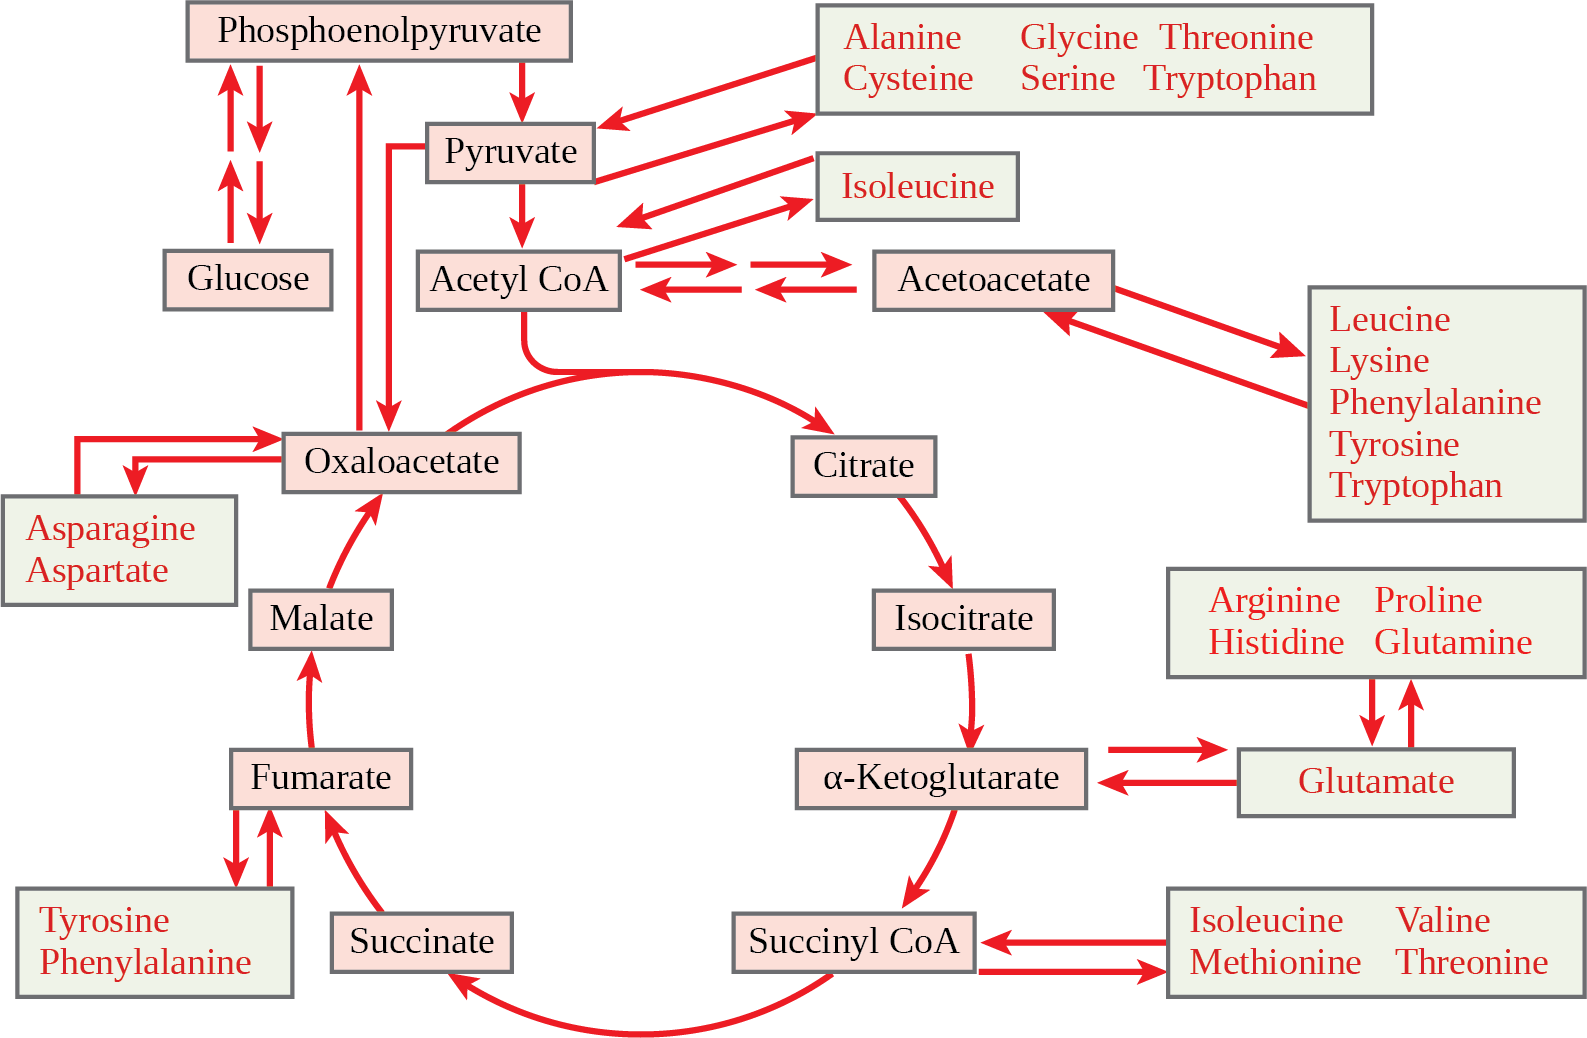 This illustration shows that the amino acids alanine, glycine, threonine, cysteine, and serine can be converted into pyruvate. Leucine, lysine, phenylalanine, tyrosine, tryptophan, and isoleucine can be converted into acetyl upper case C lower case o upper case A. Arginine, proline, histidine, glutamine, and glutamate can be converted into alpha-ketoglutarate. Isoleucine, valine, methionine, and threonine can be converted into succinyl upper C lower o upper A. Tyrosine and phenylalanine can be converted into fumarate, and aspartate and asparagine can be converted into oxaloacetate.